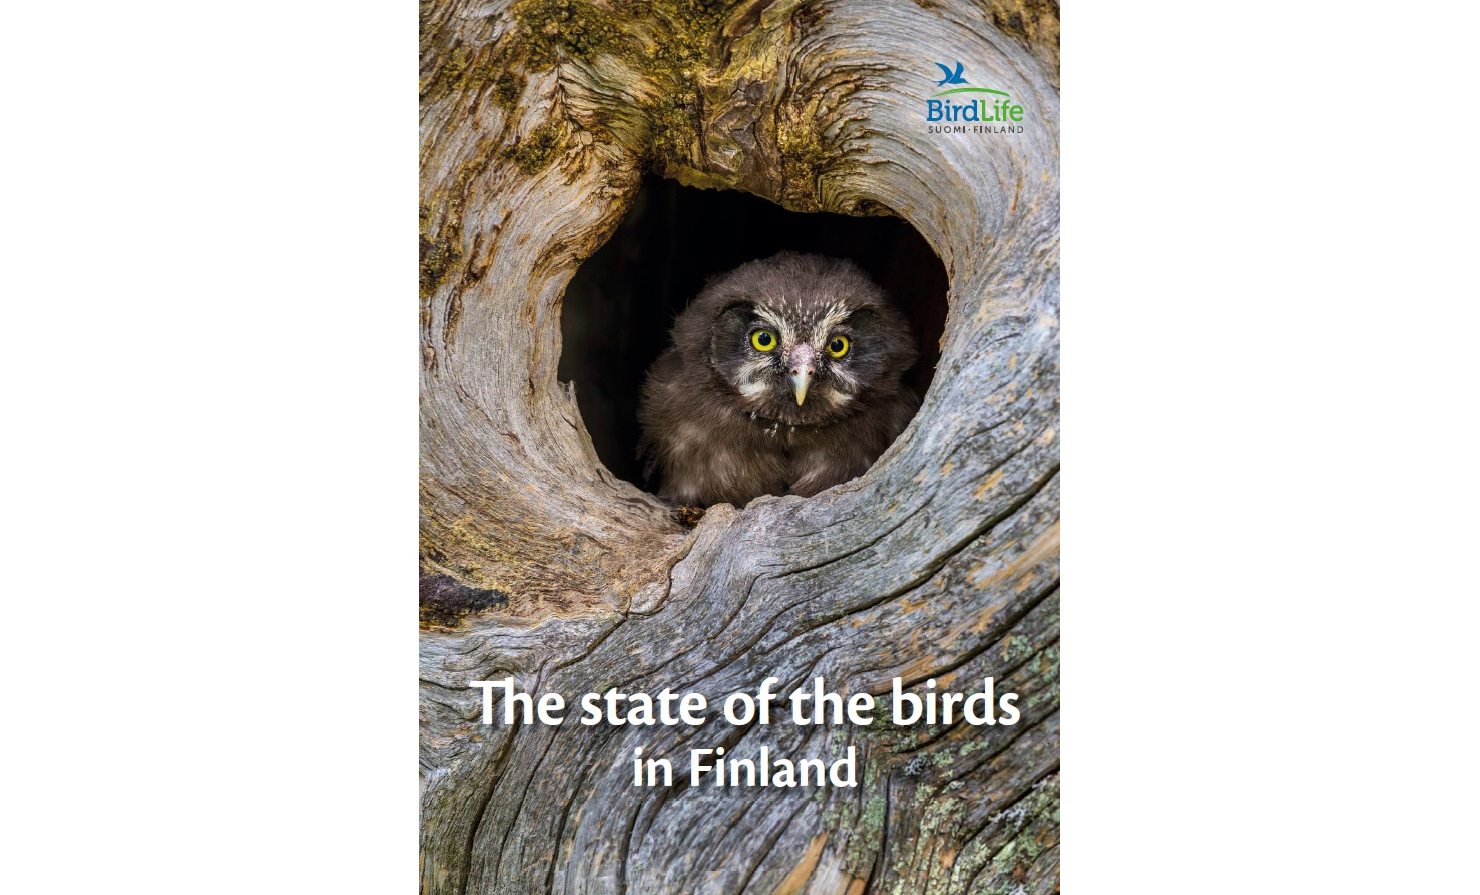 The state of the birds in Finland